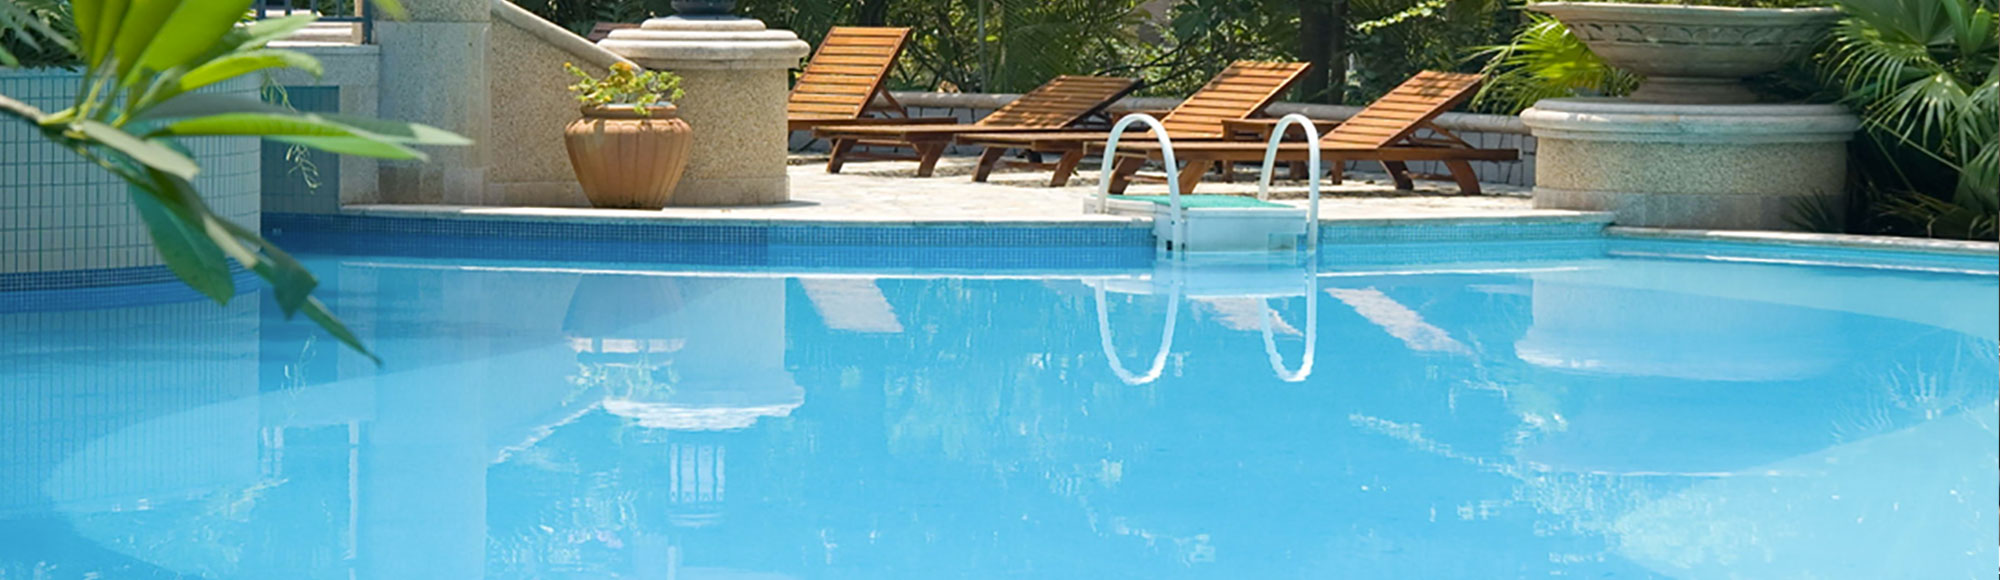 Designer Pools Swimming Pool Hot Tub Sales Service And Installation Designer Pools And